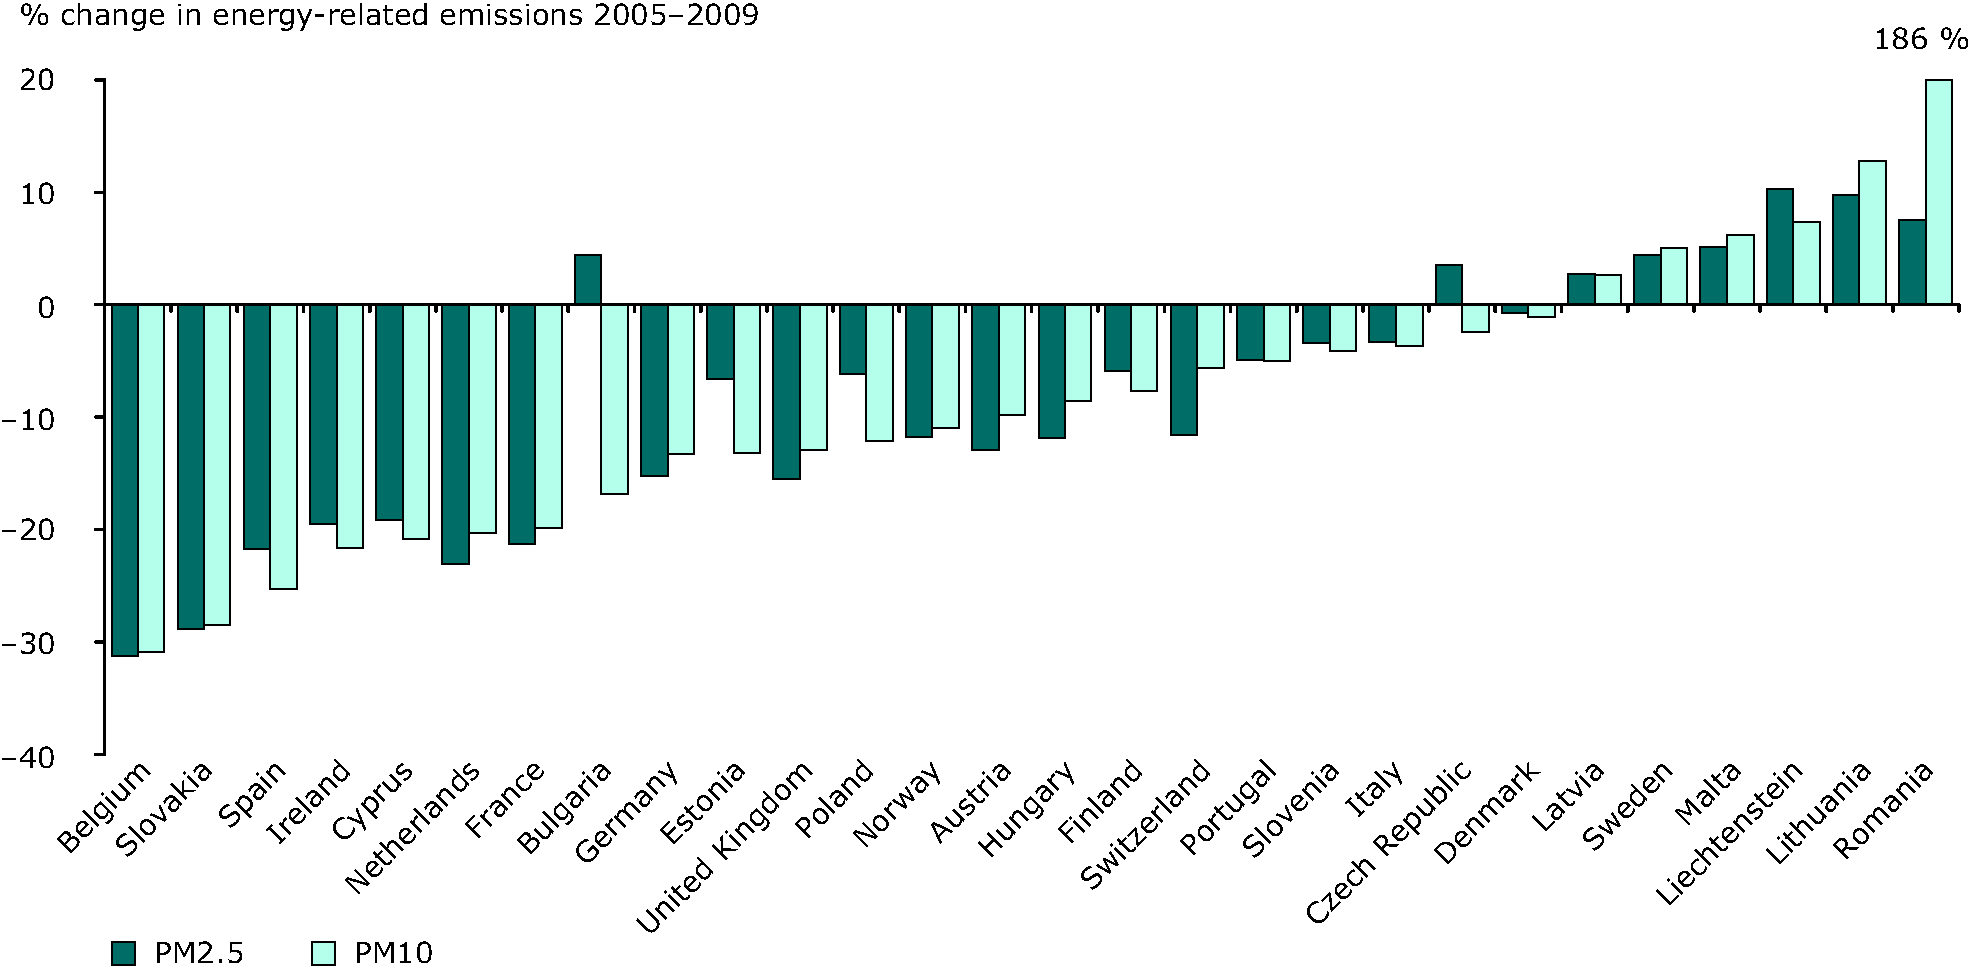 Overall change in energy-related (i.e. combustion) emissions of PM10 and PM2.5, 2005-2009